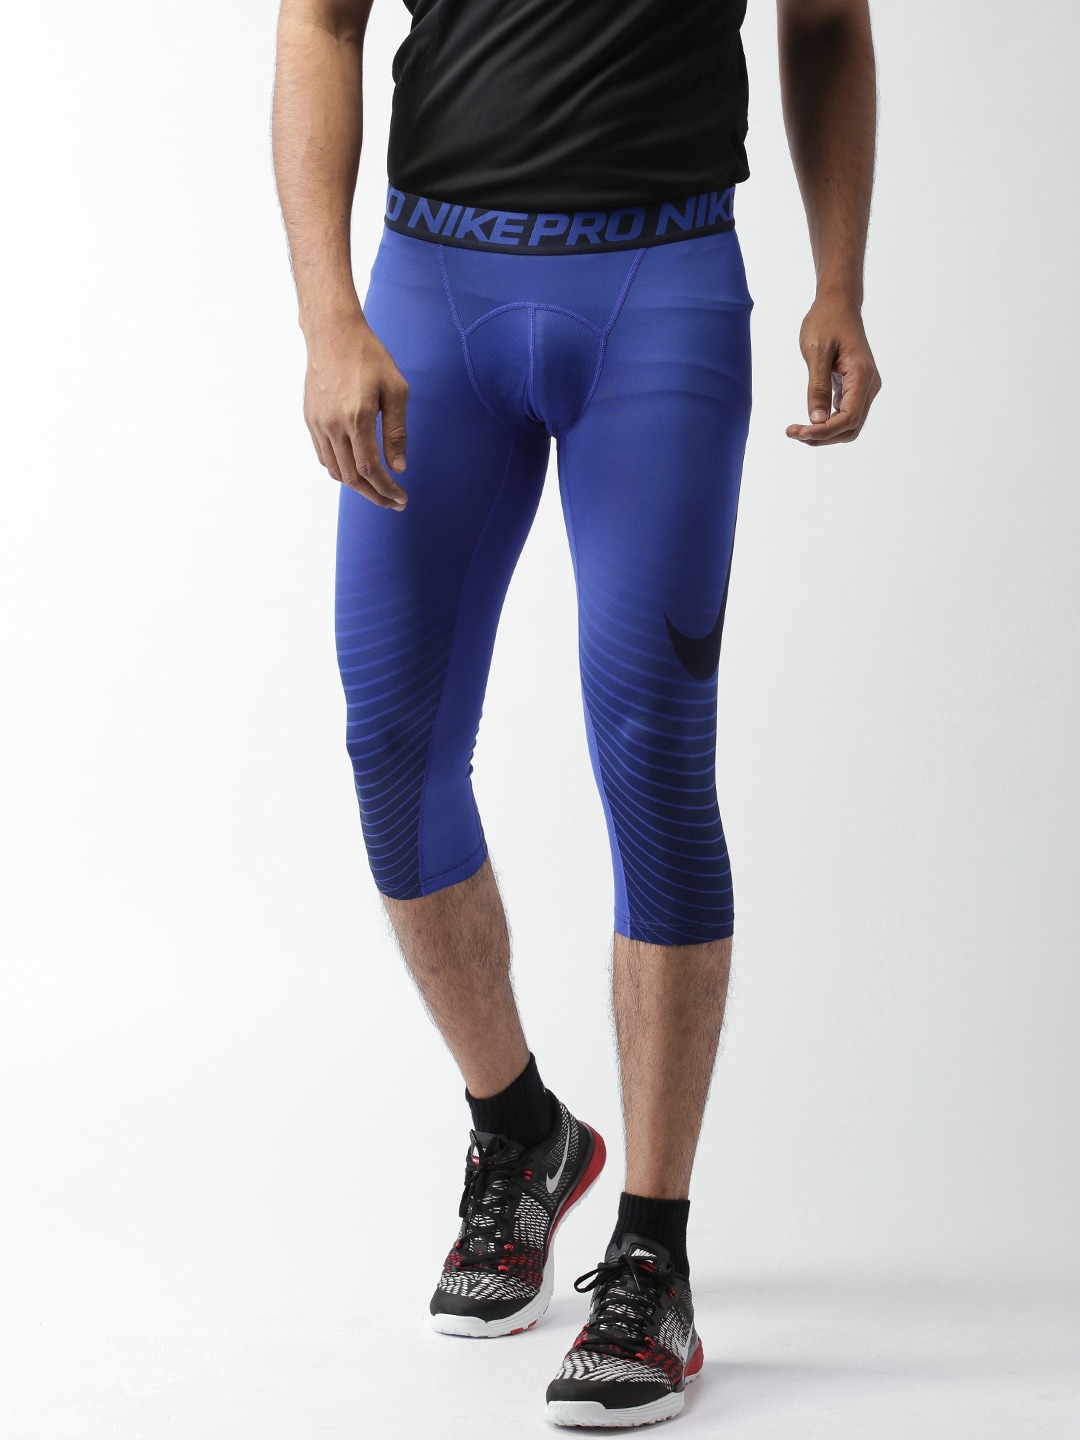 van cauwelaert - Nike Blue Tights - Buy Nike Blue Tights online in India